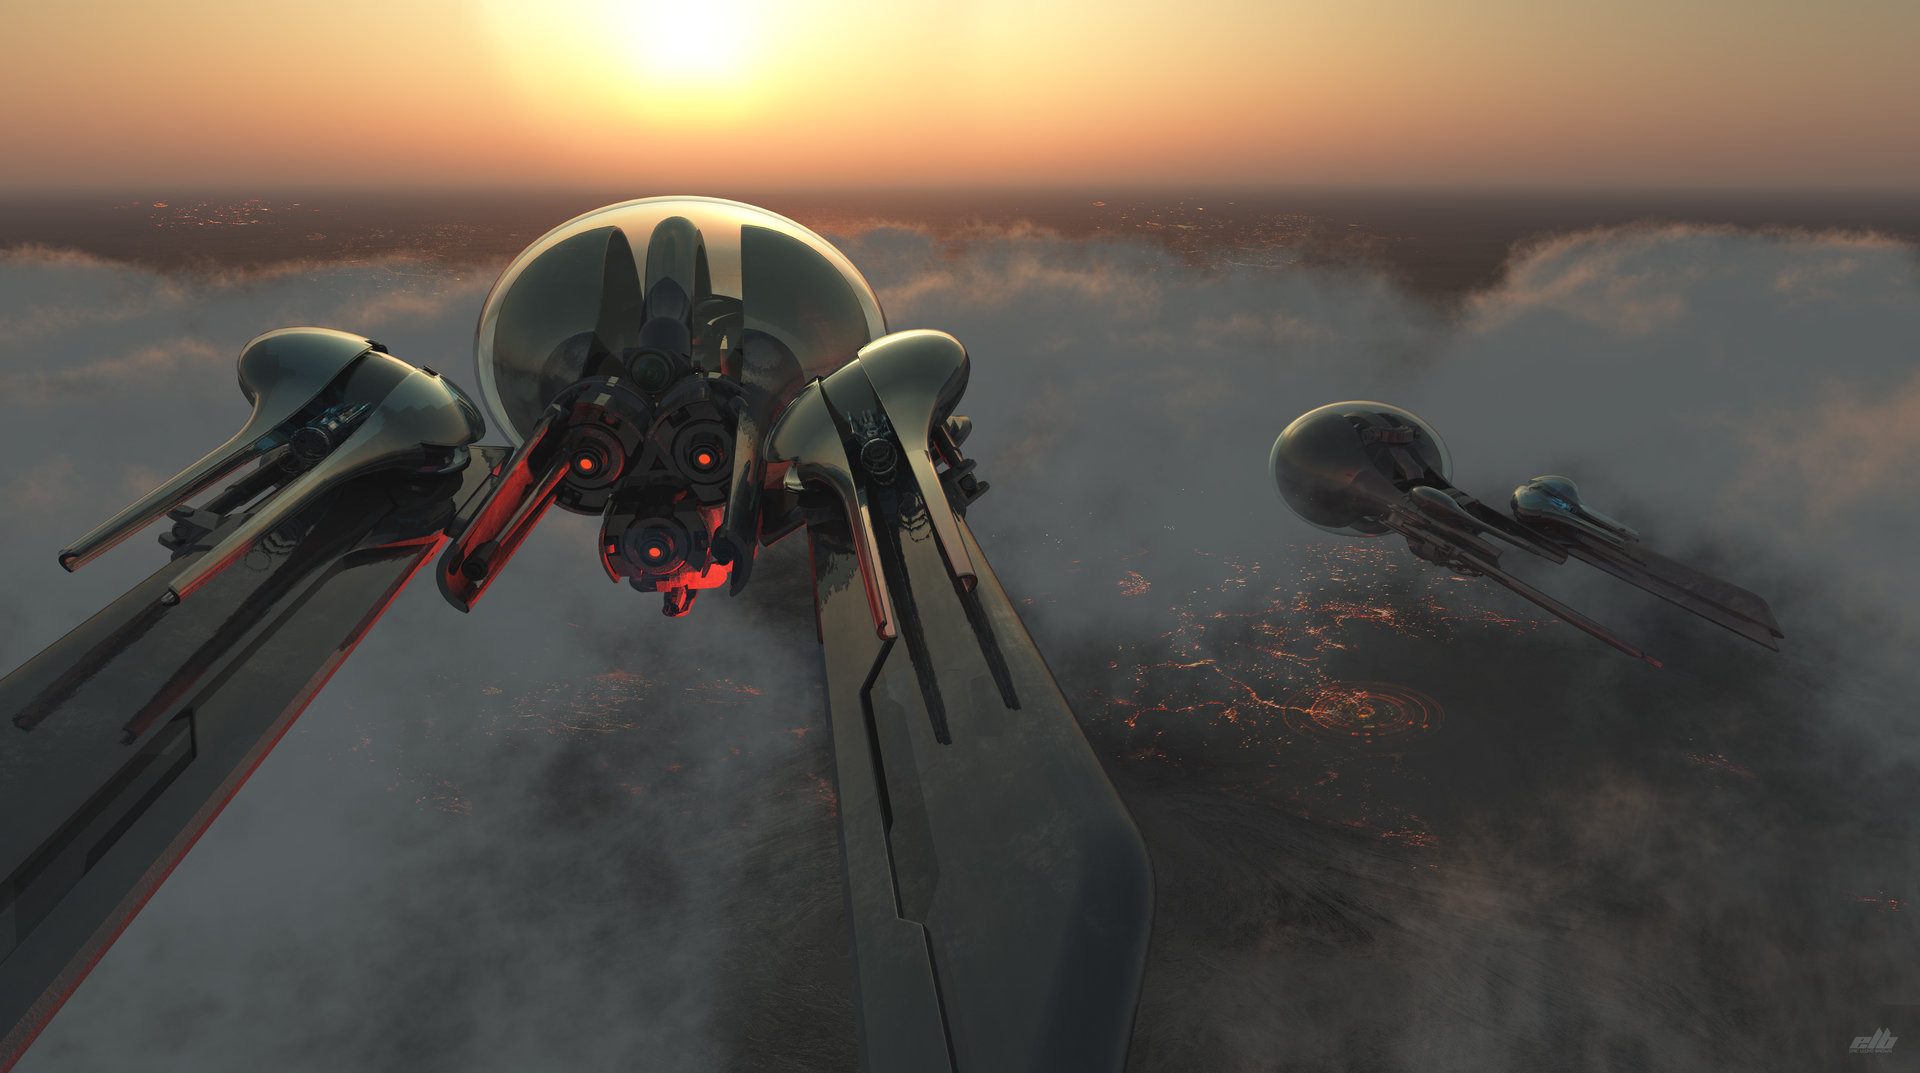 eric-lloyd-brown-concept-art-design-drones-2250